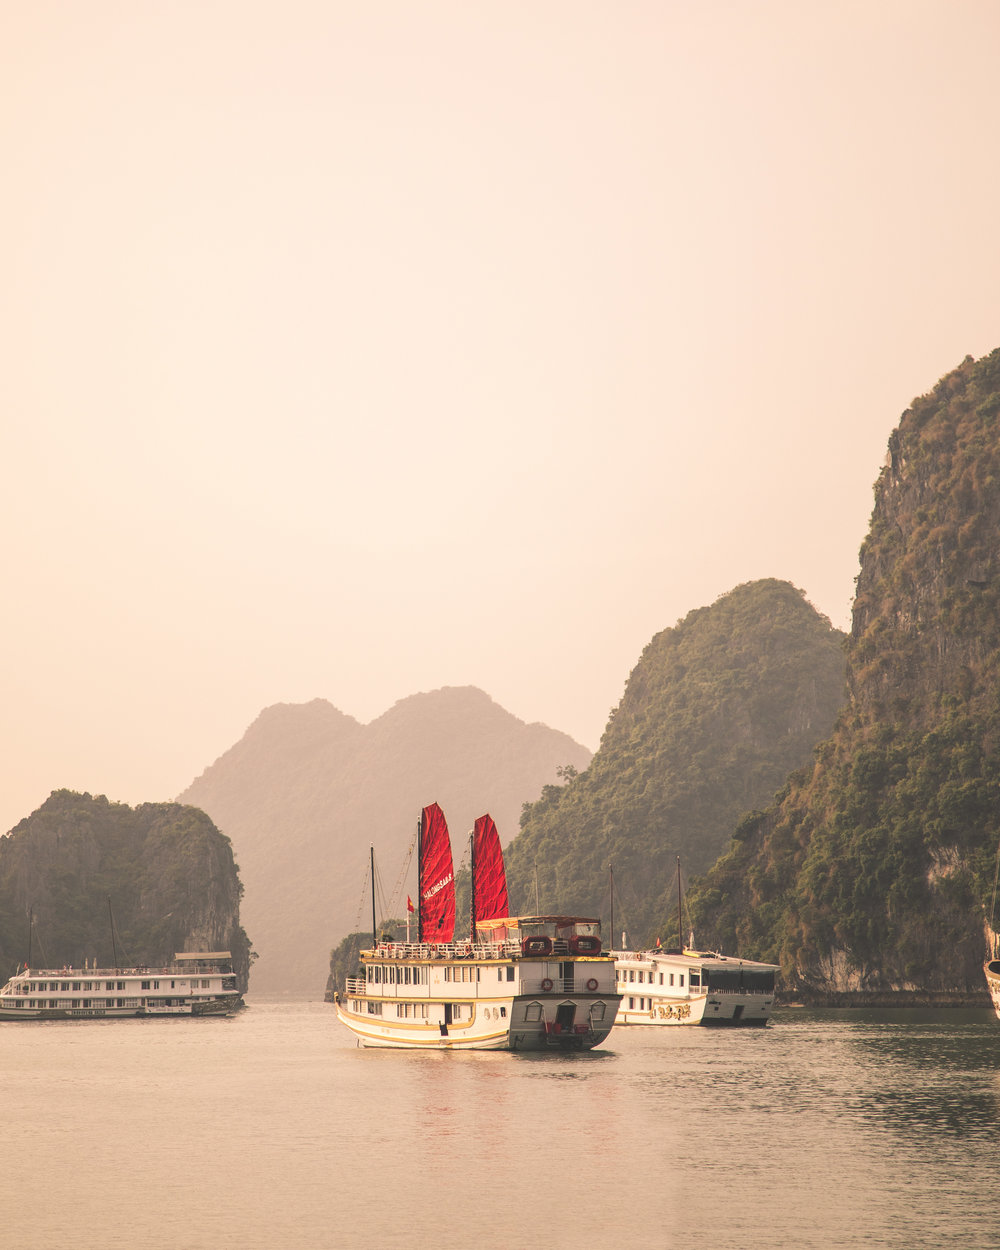 Cruising through the beautiful Halong Bay